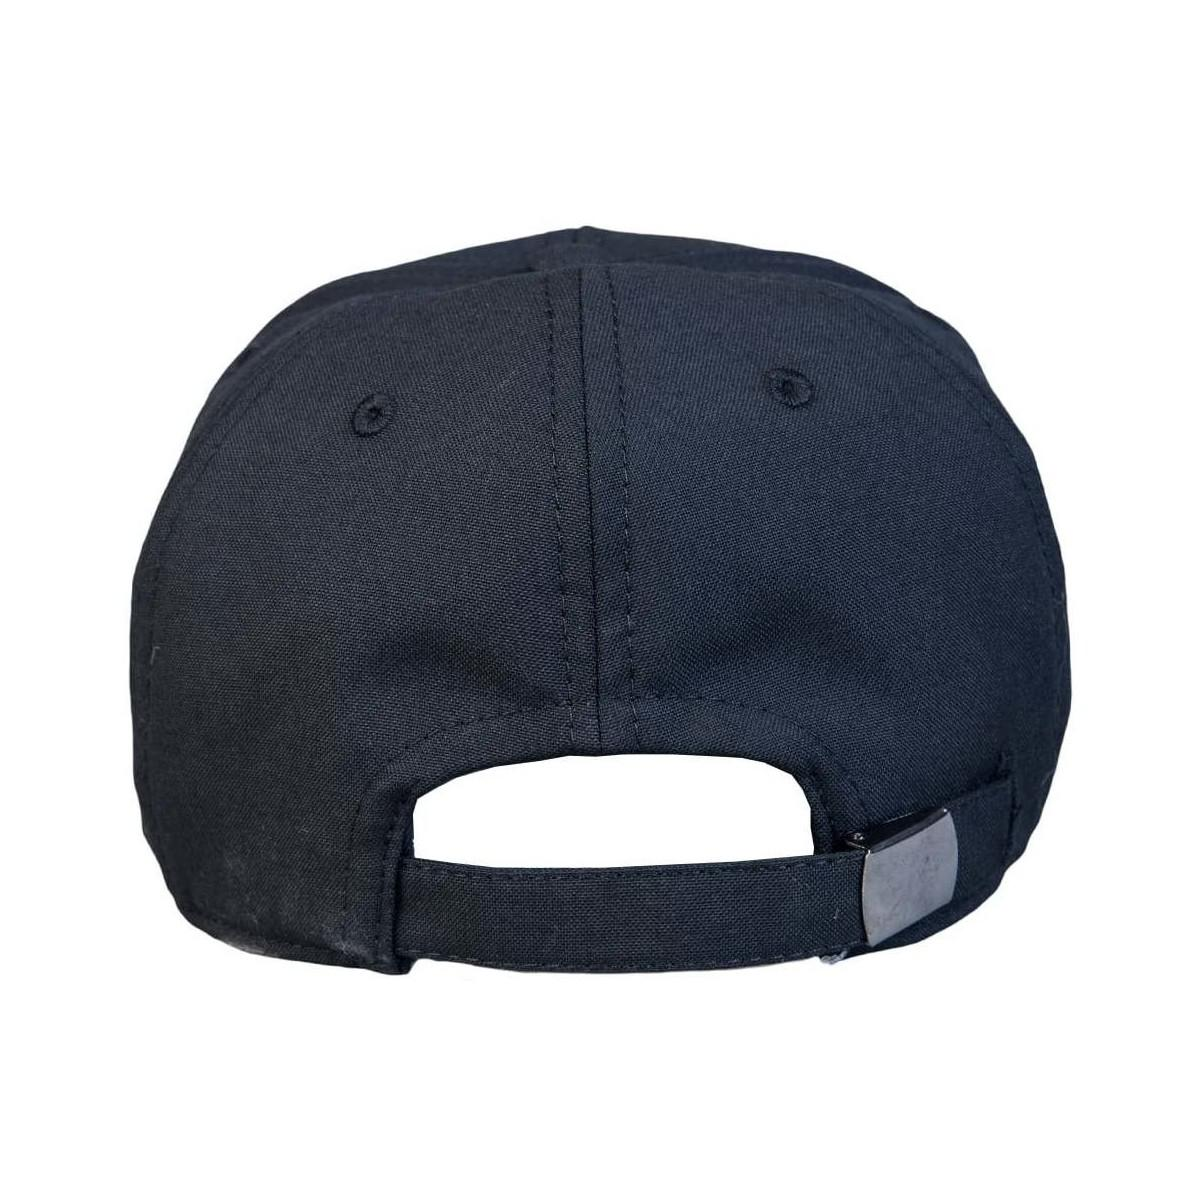 ded842fd9 Versus Versace Baseball Cap Buc0019 Bt10596 Men's Cap In Black in ...